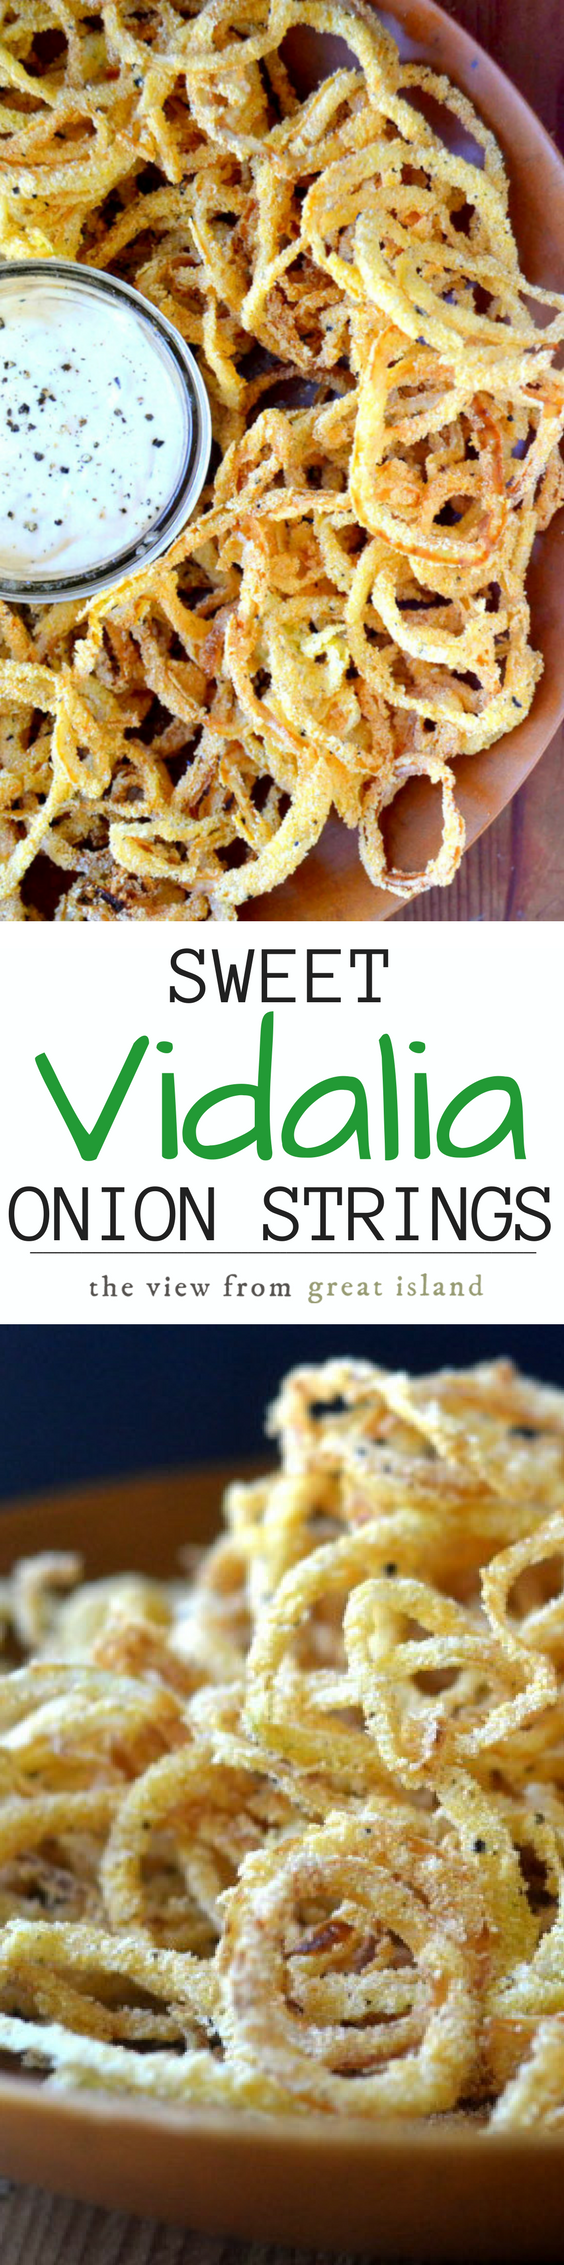 Vidalia Onion Strings with Horseradish Aioli might just be the world's most perfect appetizer, these thin sweet onions rings are fried to perfection in minutes! #onionstrings #friedonions #vidaliaonions #snack #appetizer #onionrings #diyonionrings #horseradish #sweetonions